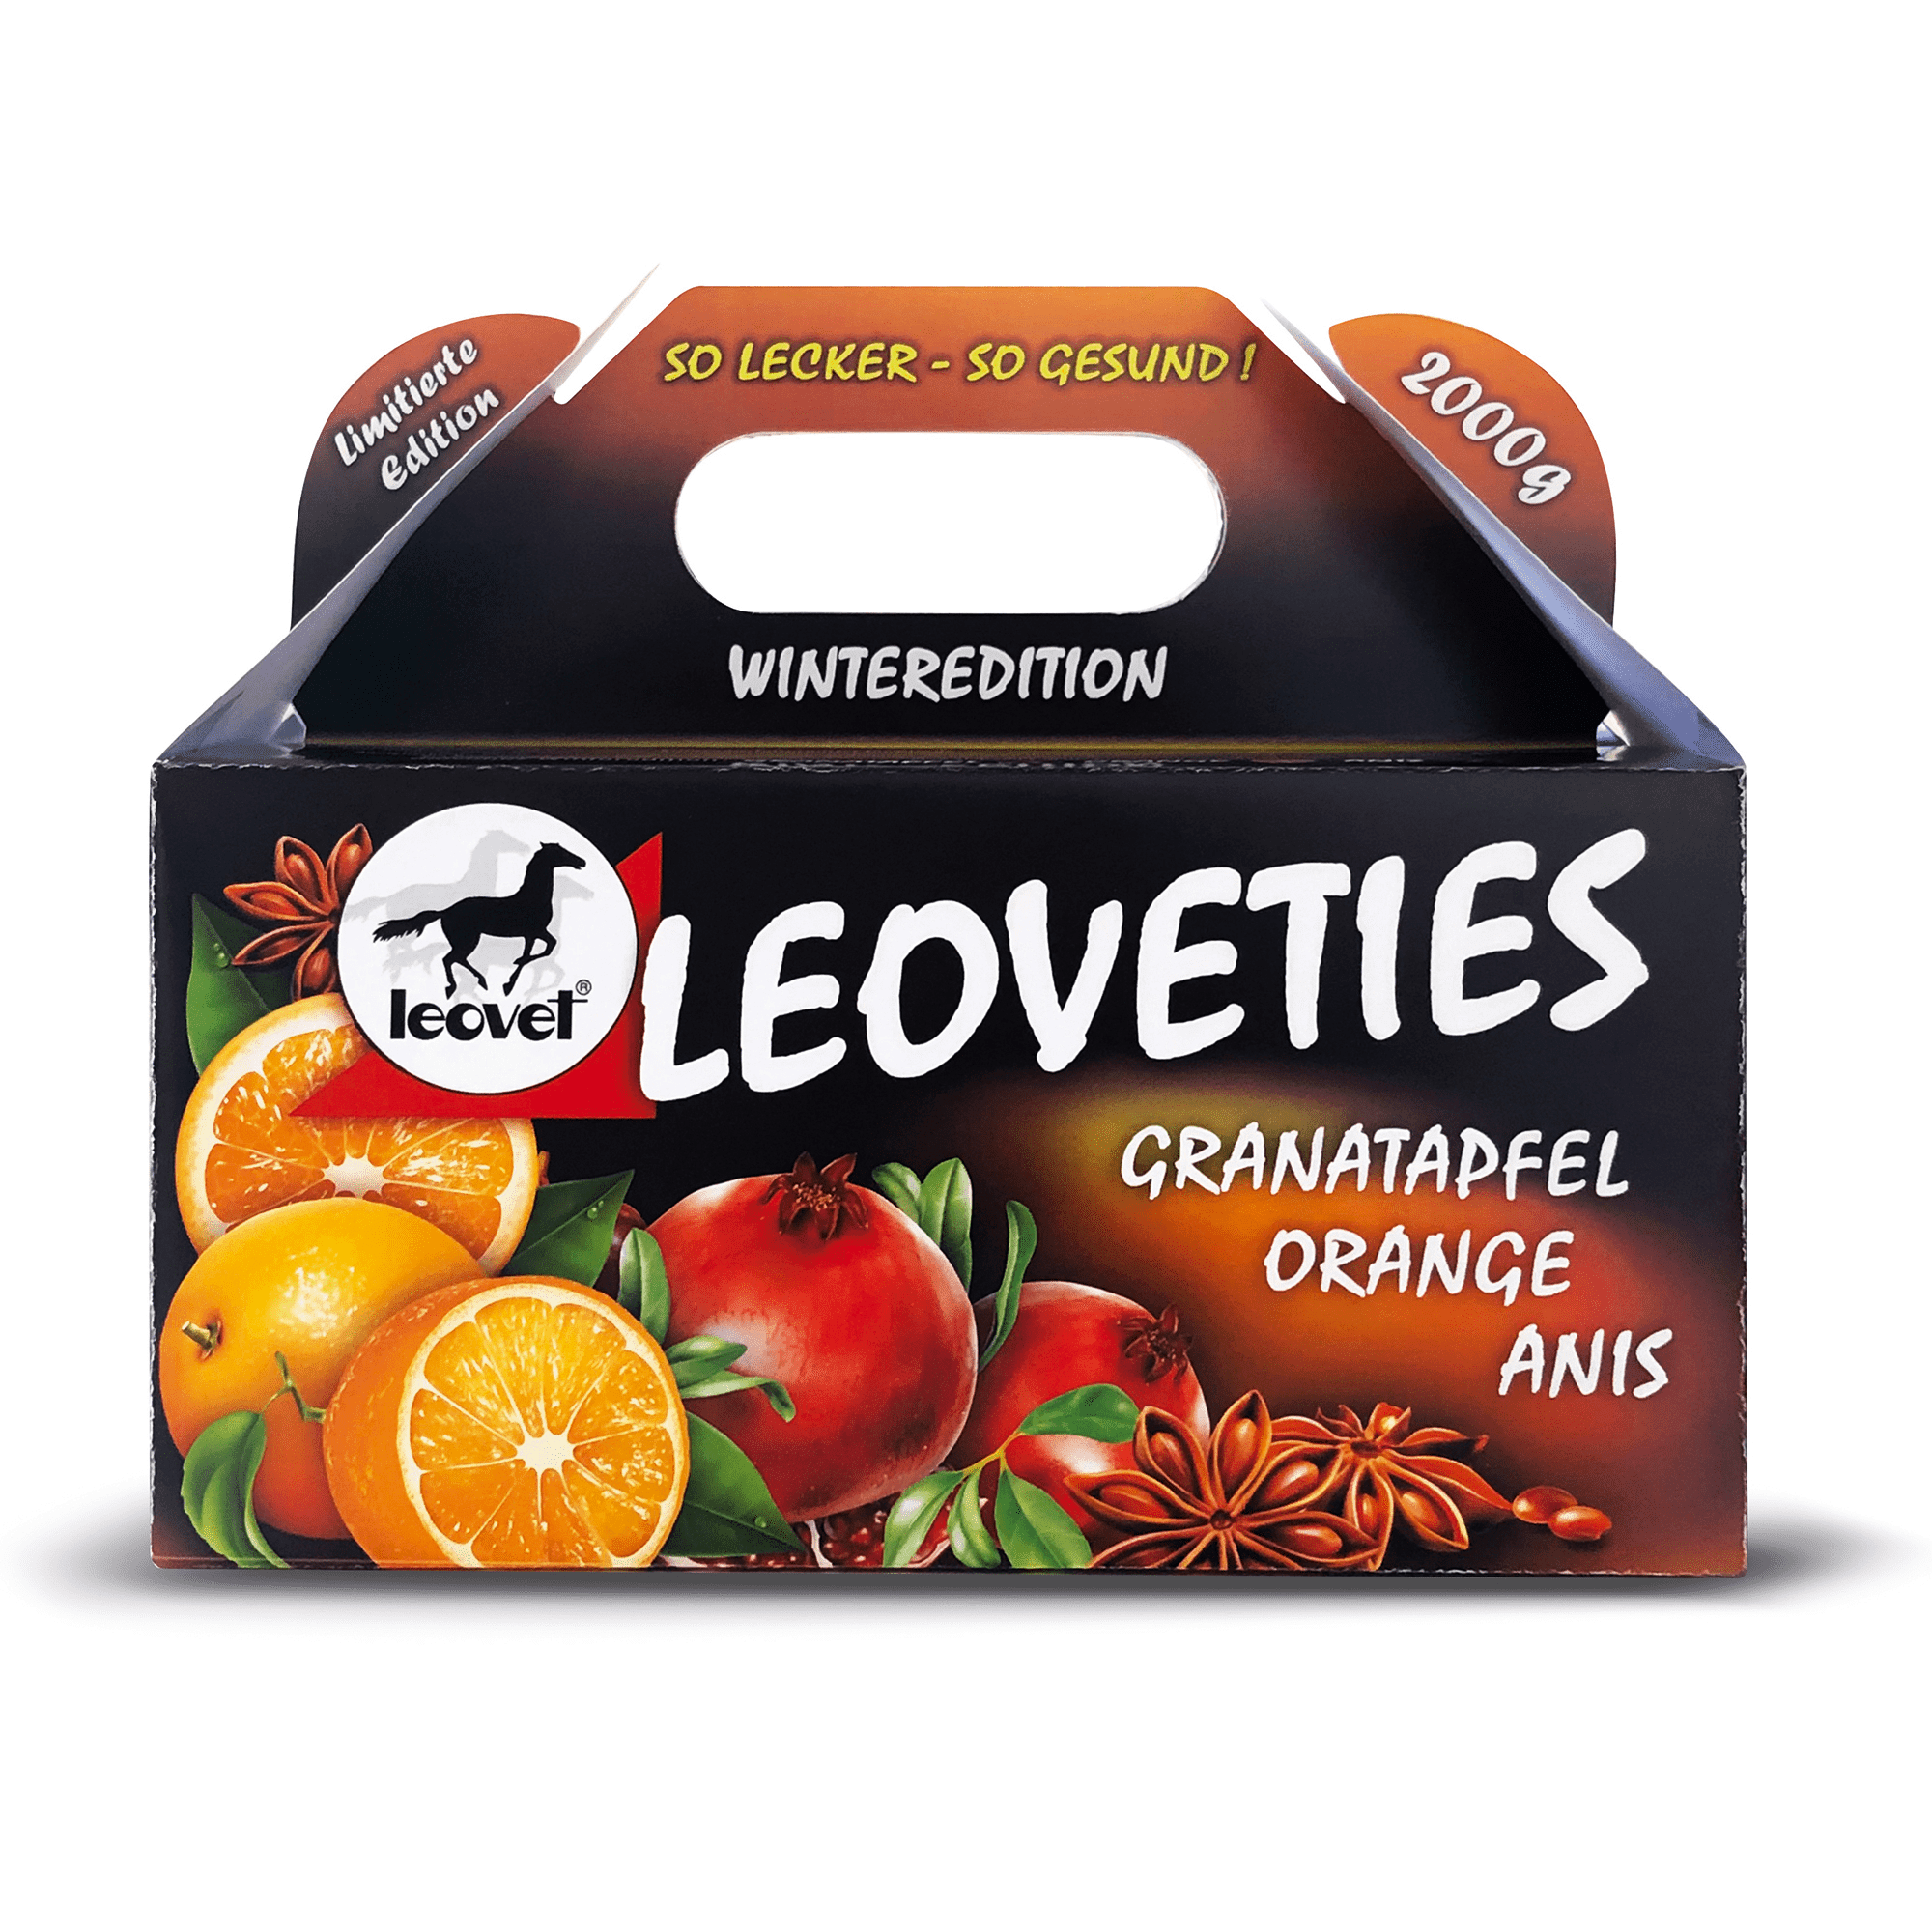 Leovet Leoveties Winteredition 2020